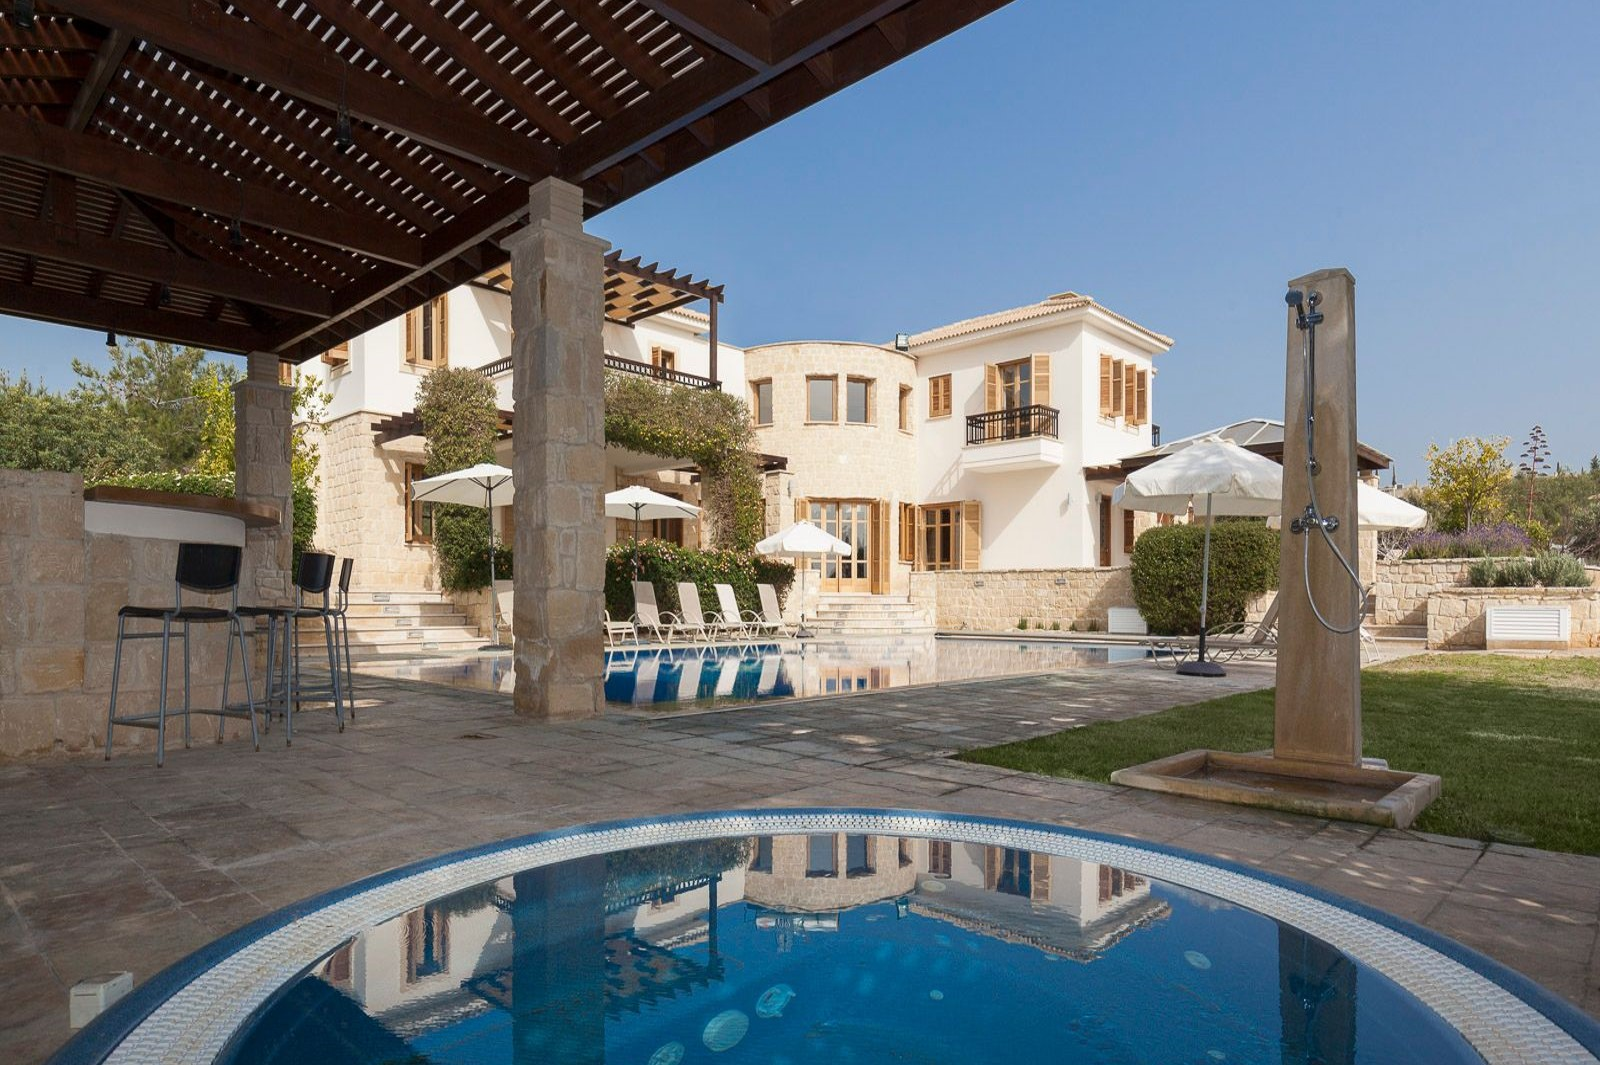 Villa for rent in Cyprus surrounded by mountains